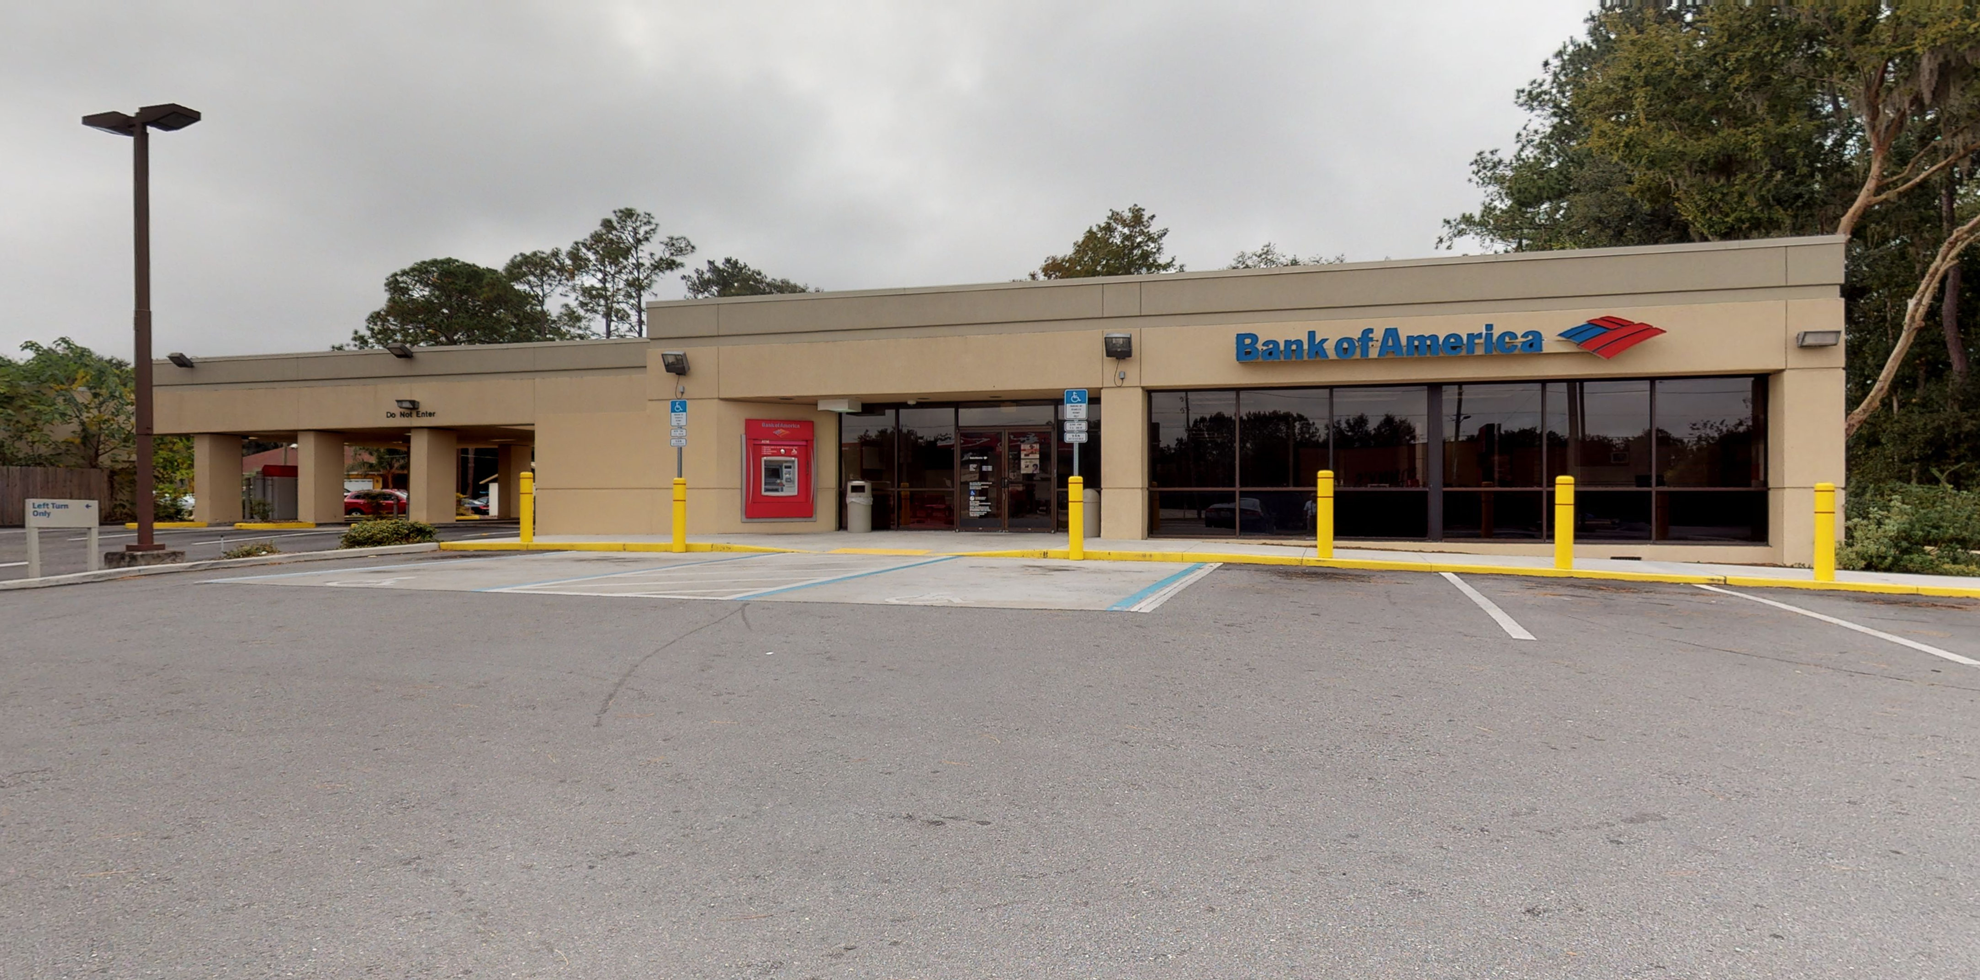 Bank of America financial center with drive-thru ATM | 5222 SE Abshier Blvd, Belleview, FL 34420